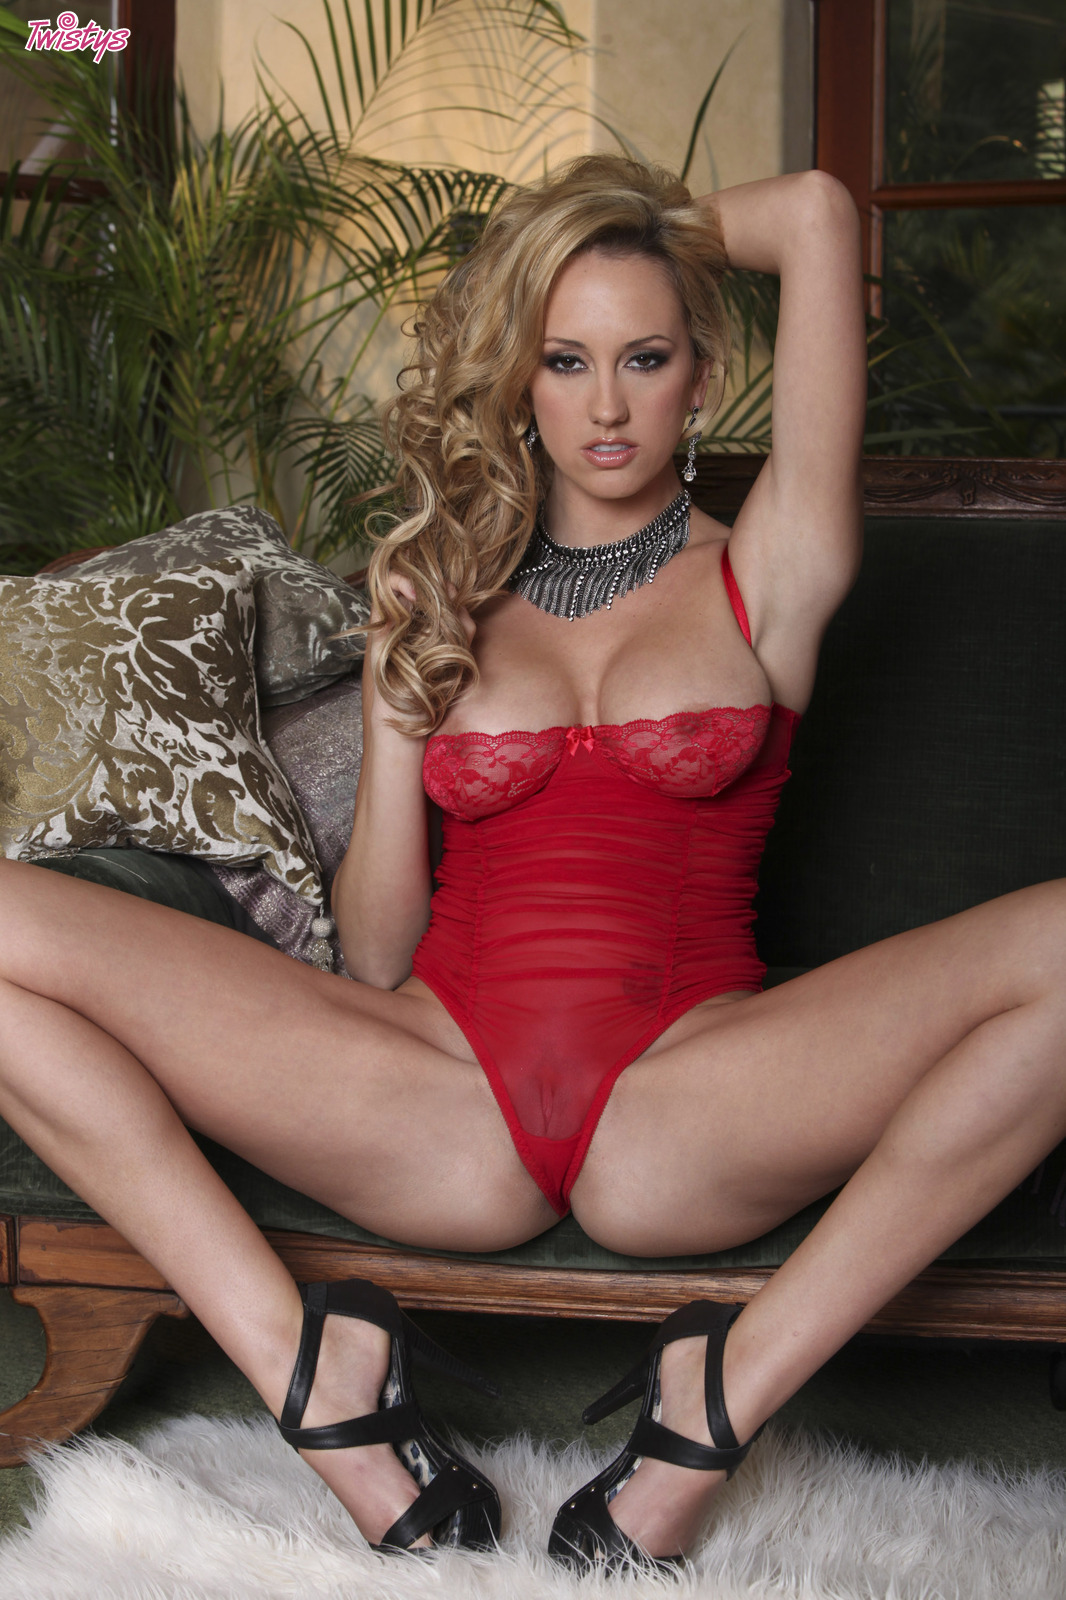 Blonde brett rossi sexy with you agree